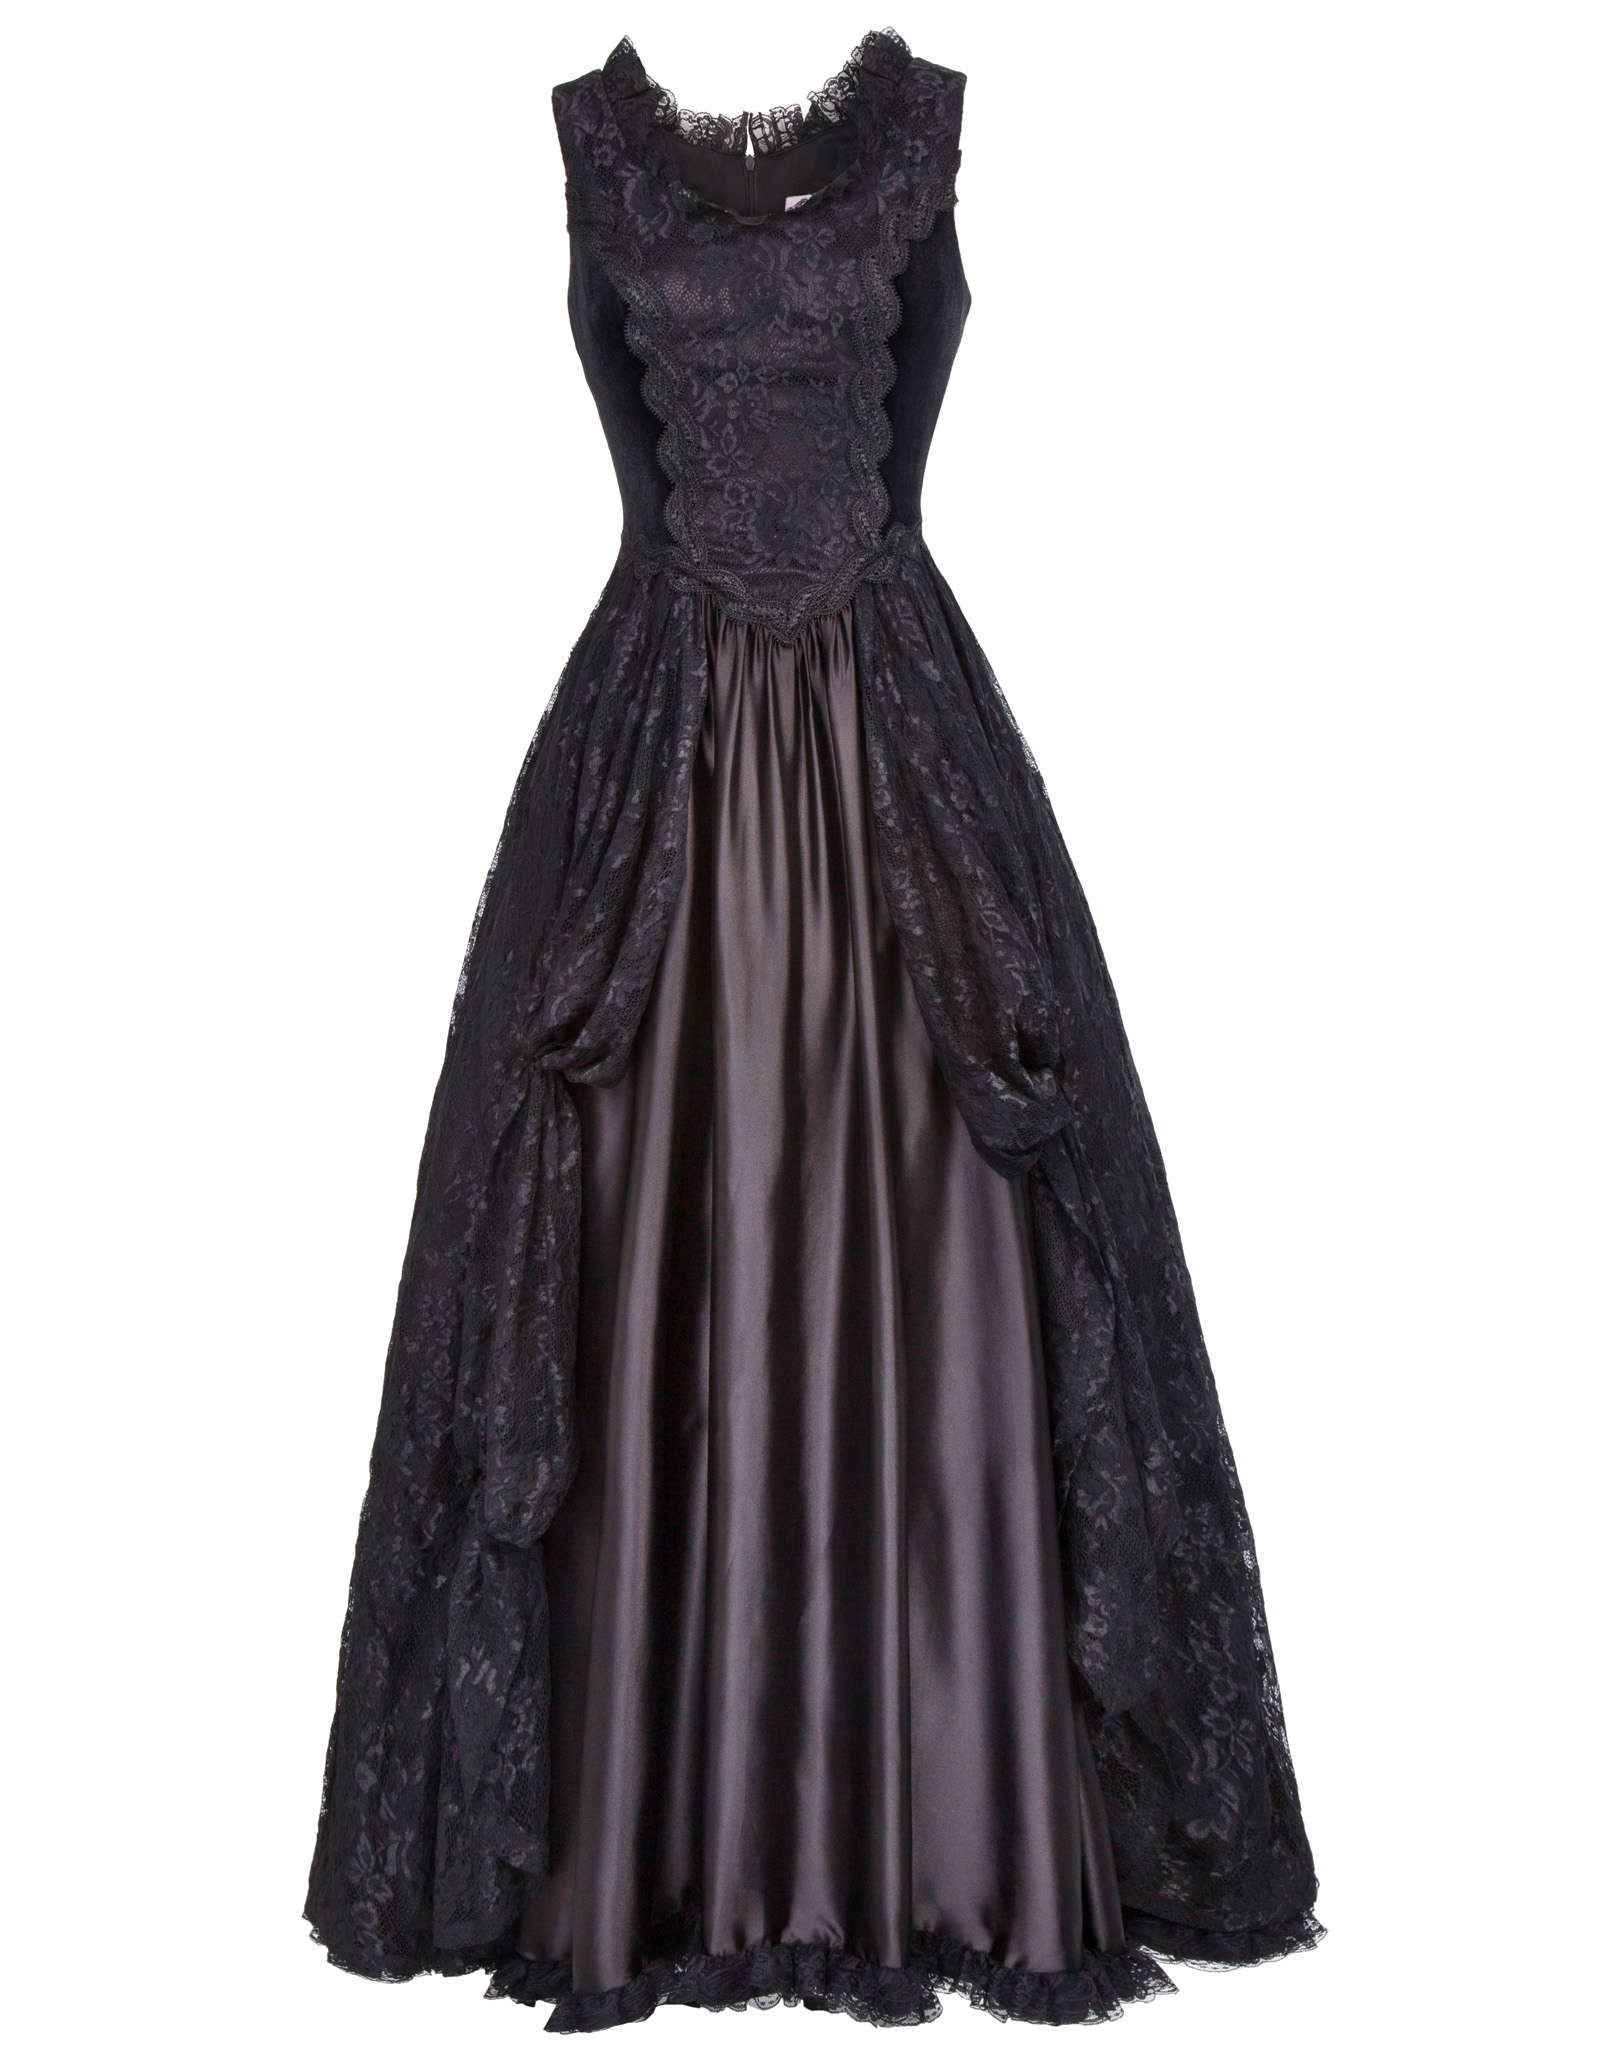 5c801f69076 Buy edwardian dresses and get free shipping on AliExpress.com